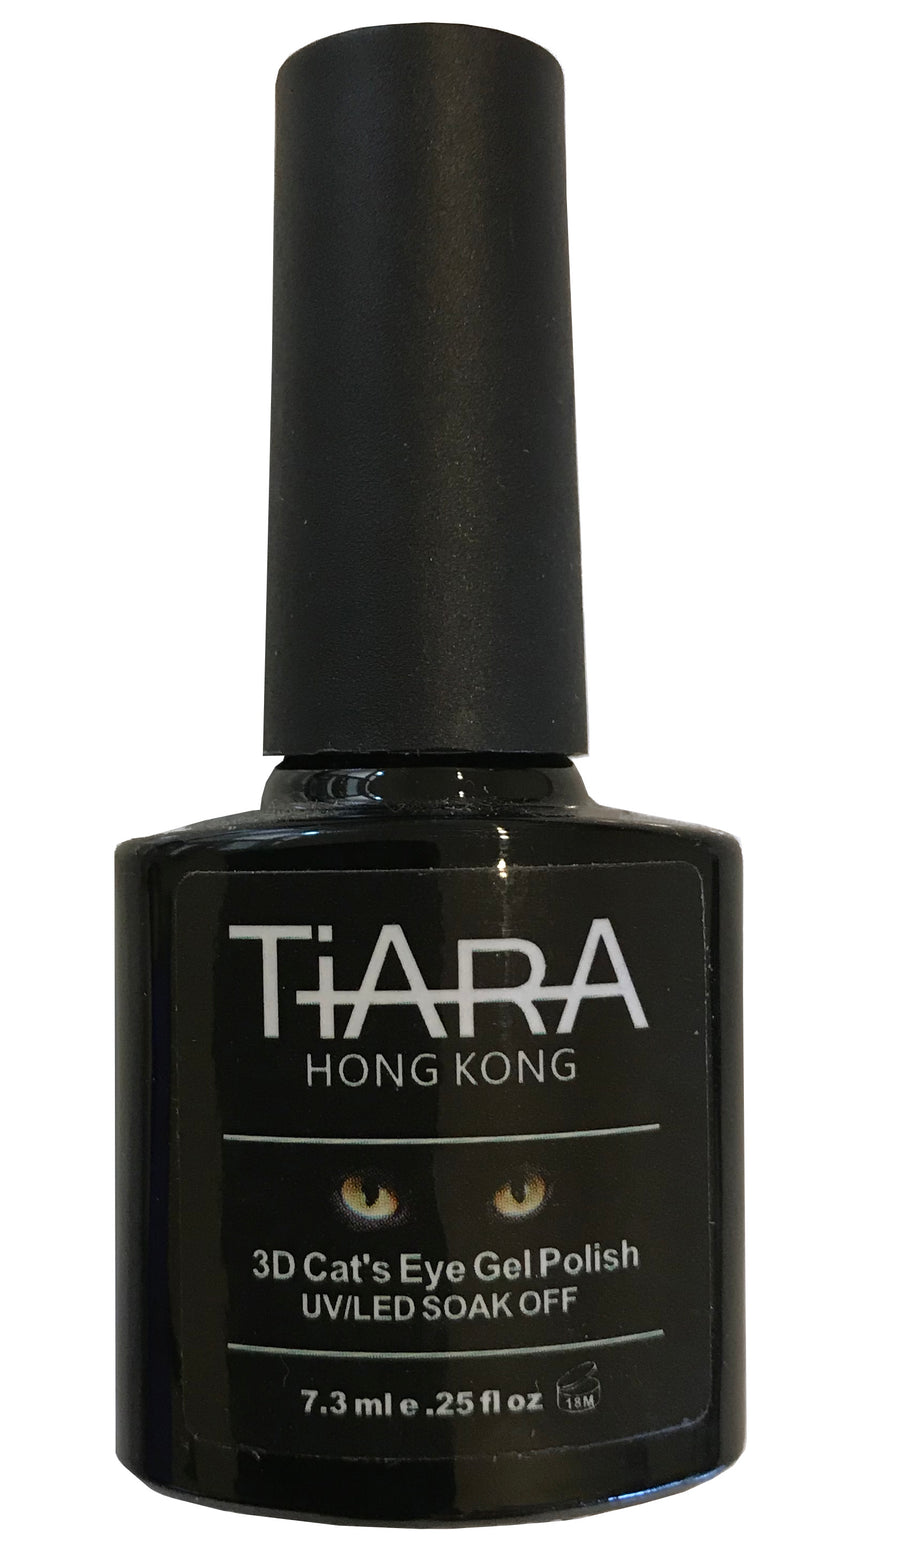 TiARA 3D CAT'S EYE GEL POLISH & MAGIC PLATE - 01